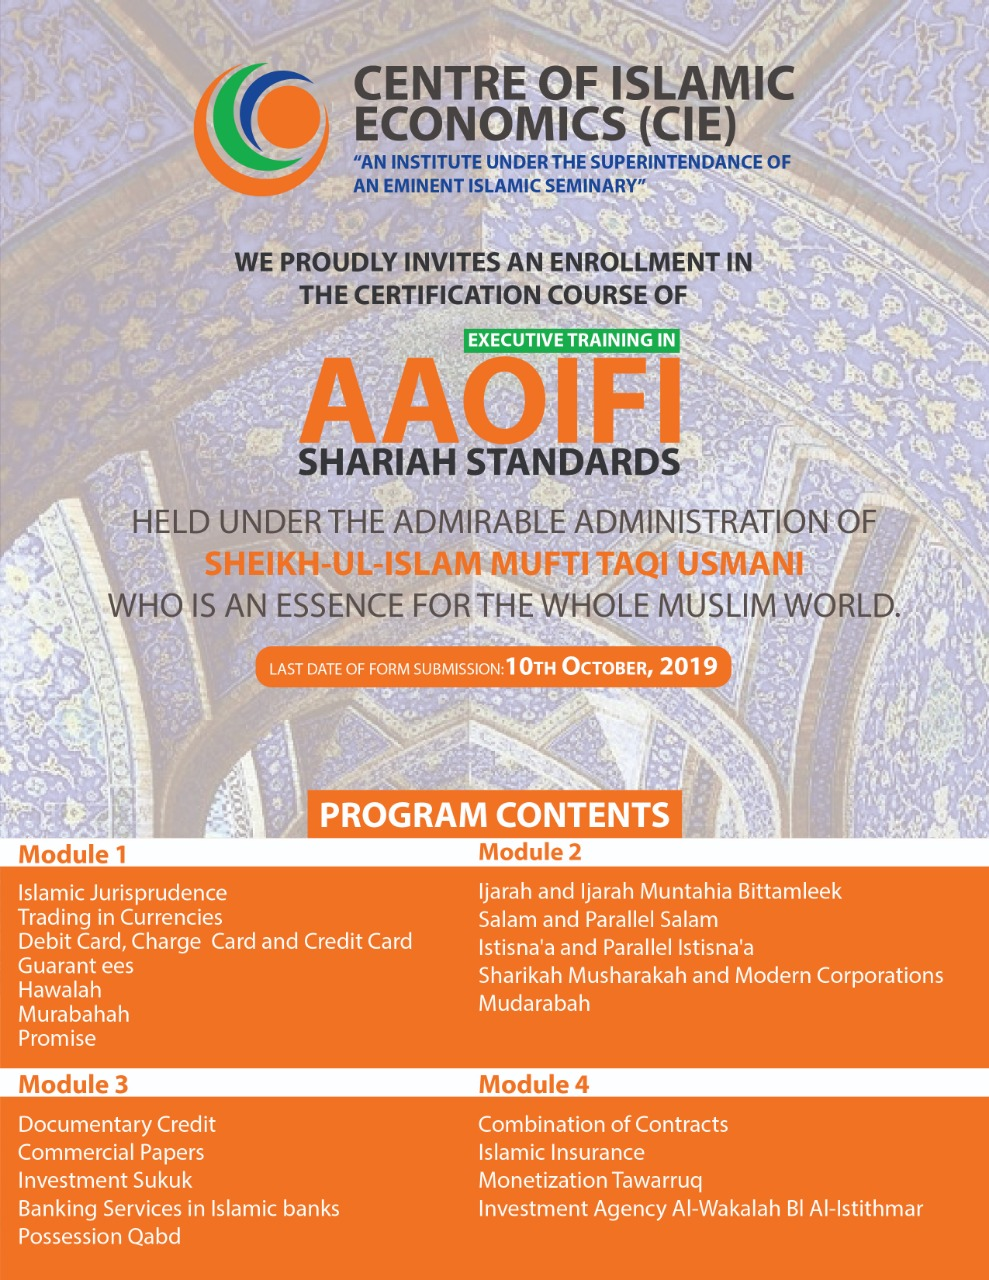 AAOIFI SHARIAH STANDARDS